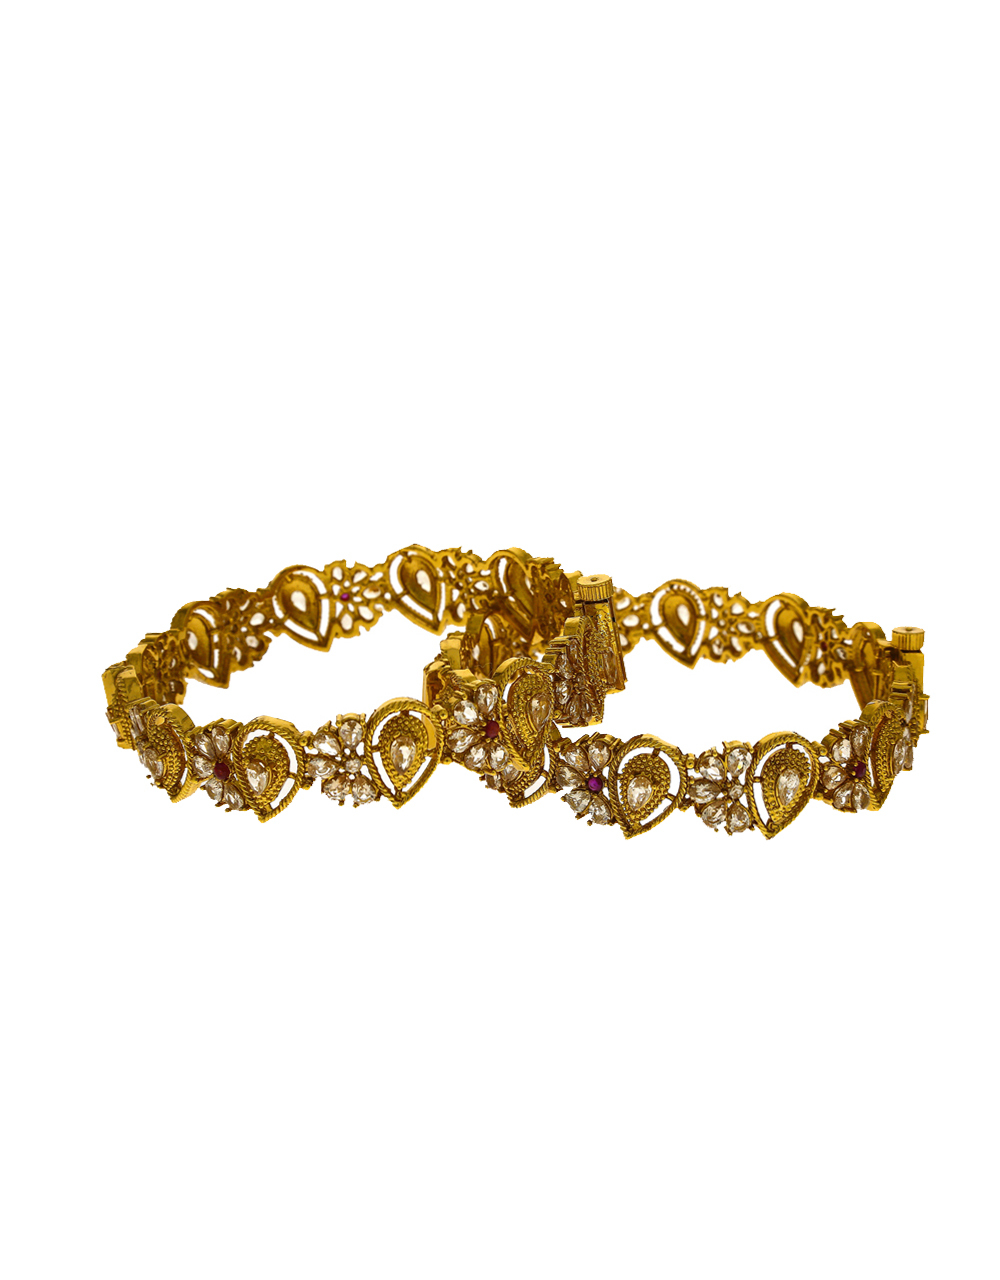 Drop shape and floral designer bangle studded with LCt stone for women